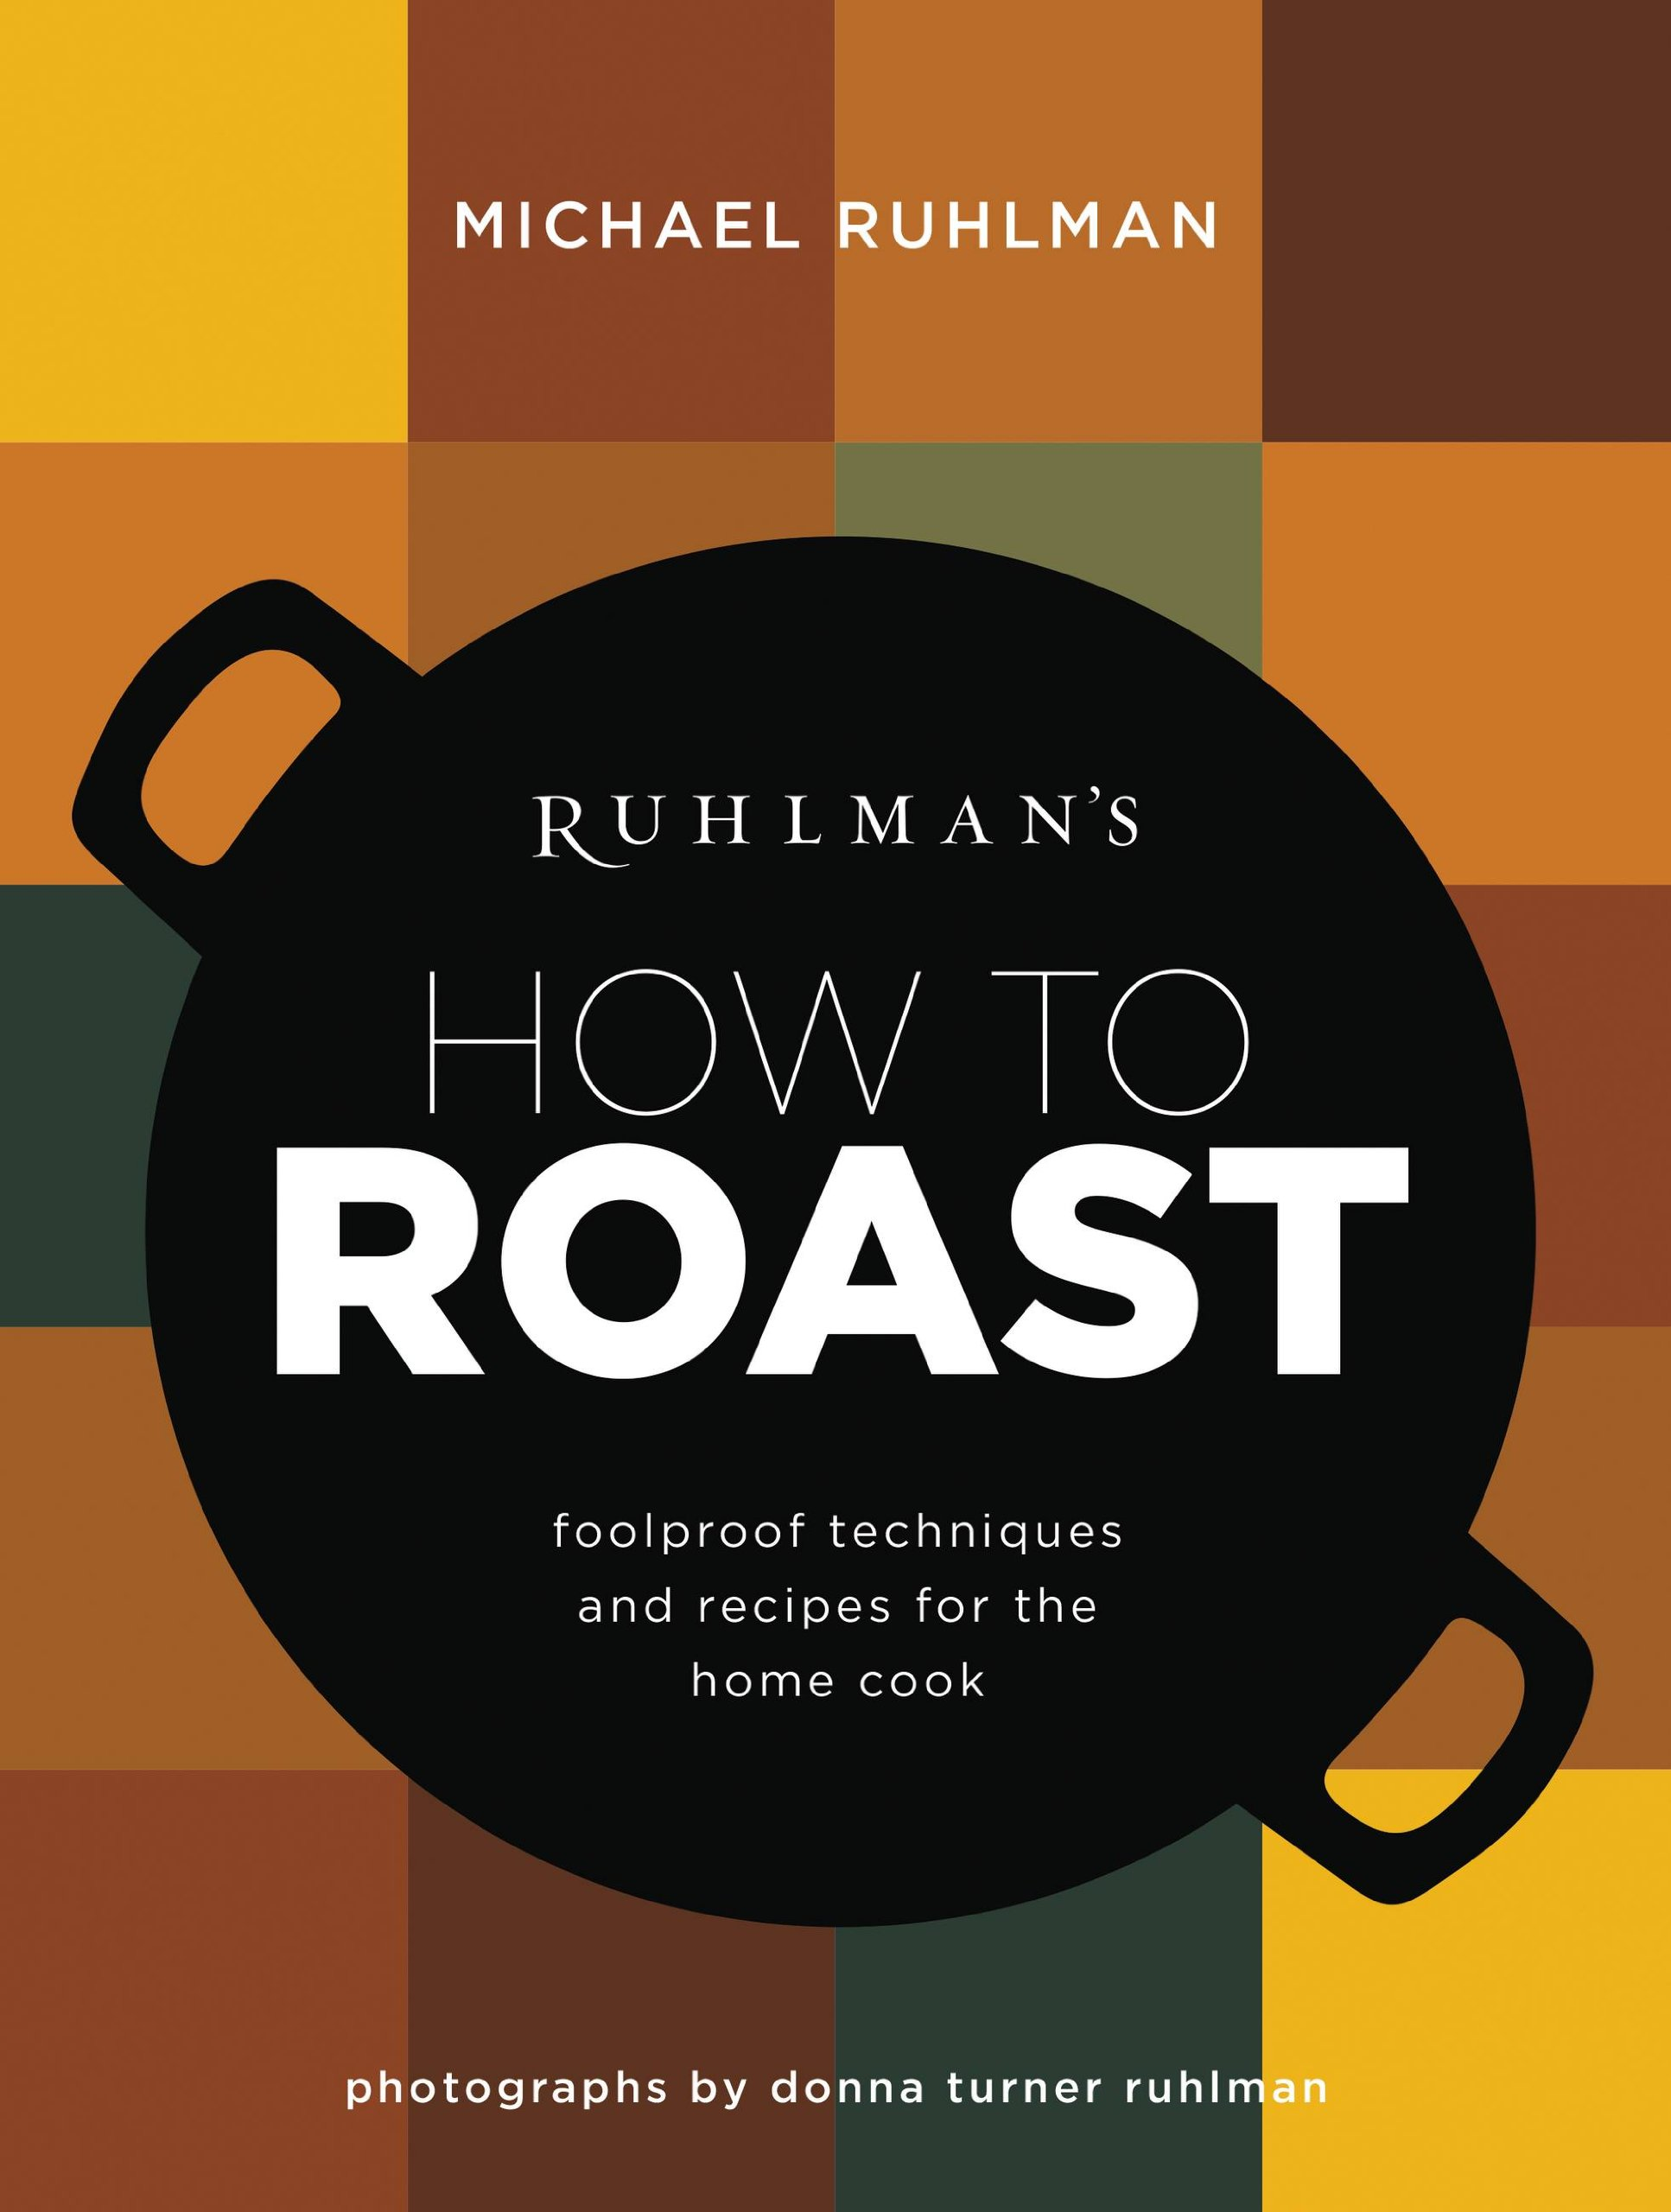 Image OfRuhlman's How To Roast: Foolproof Techniques And Recipes For The Home Cook (Ruhlman's How To... Book 1)